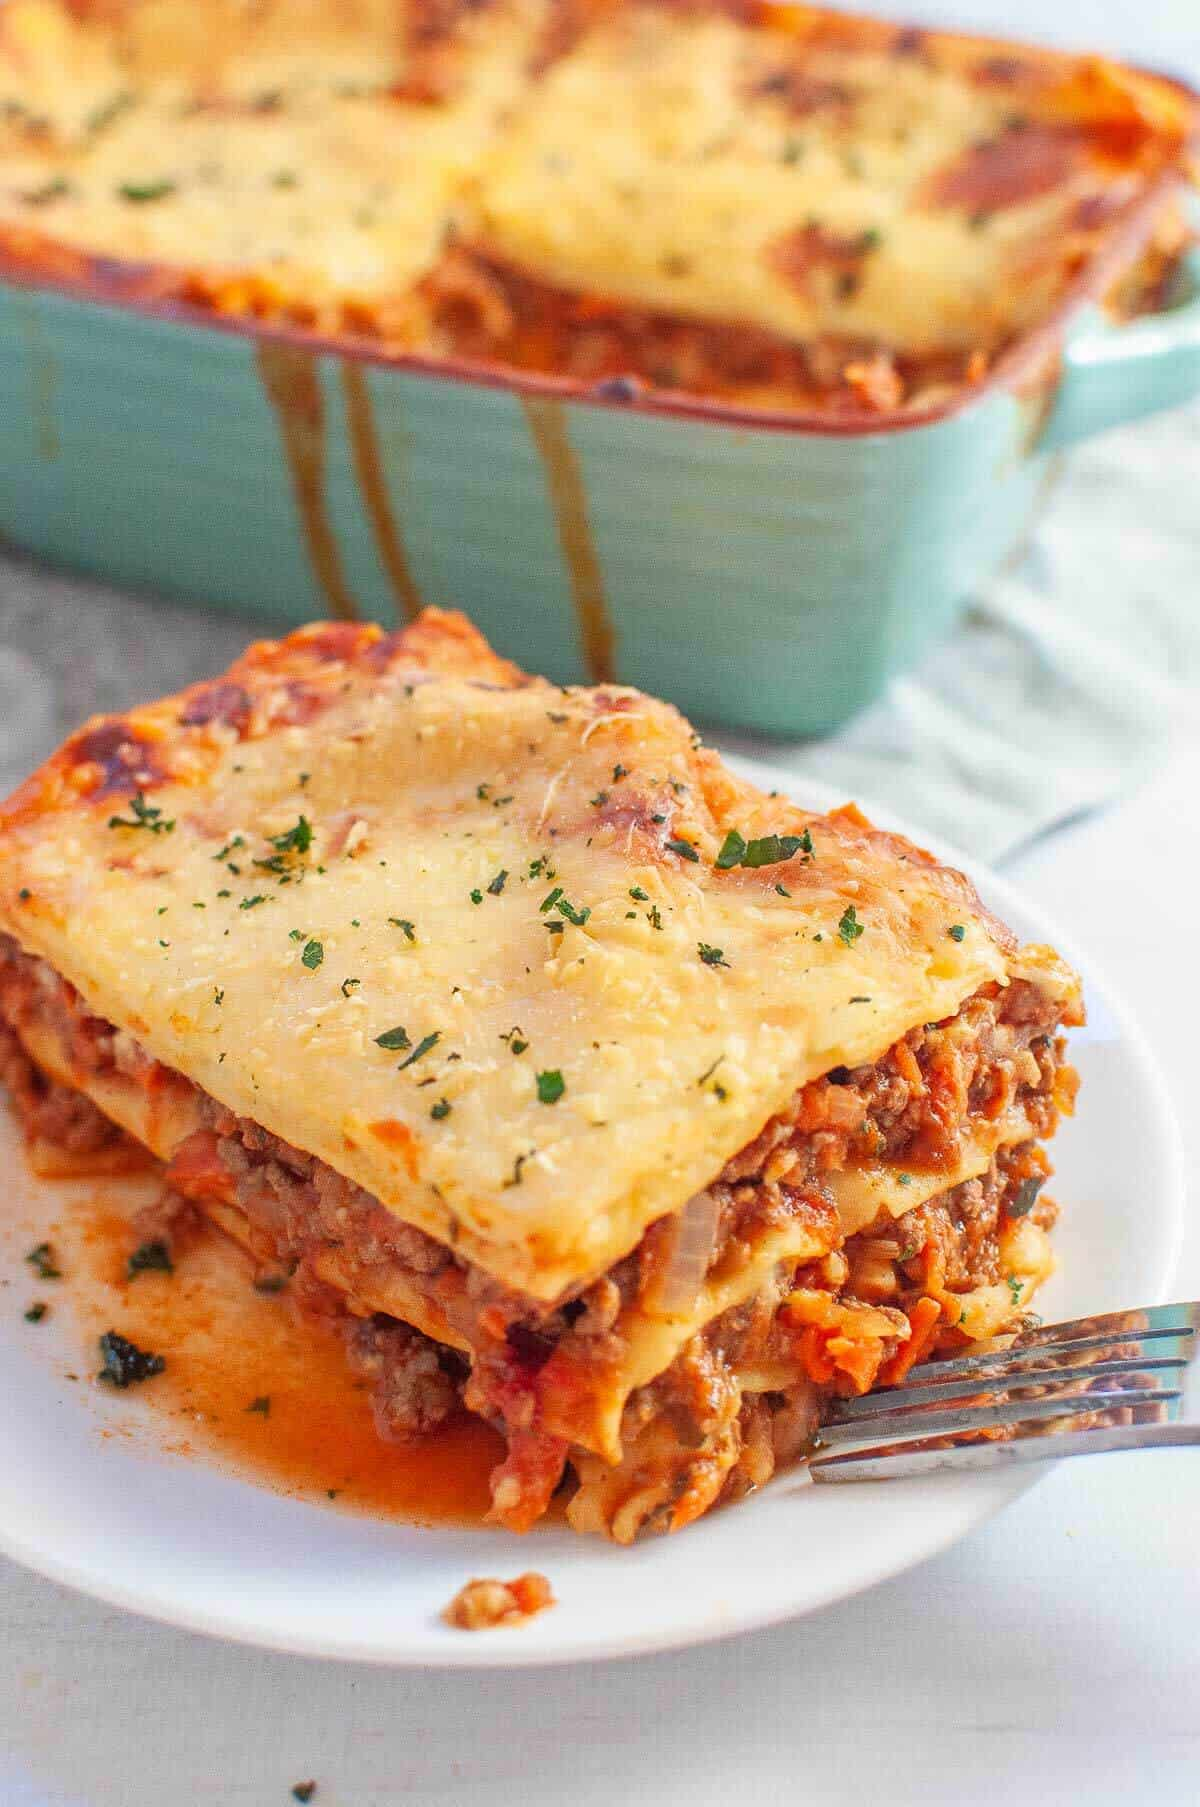 a serve of lasagna without ricotta on a white plate with a fork